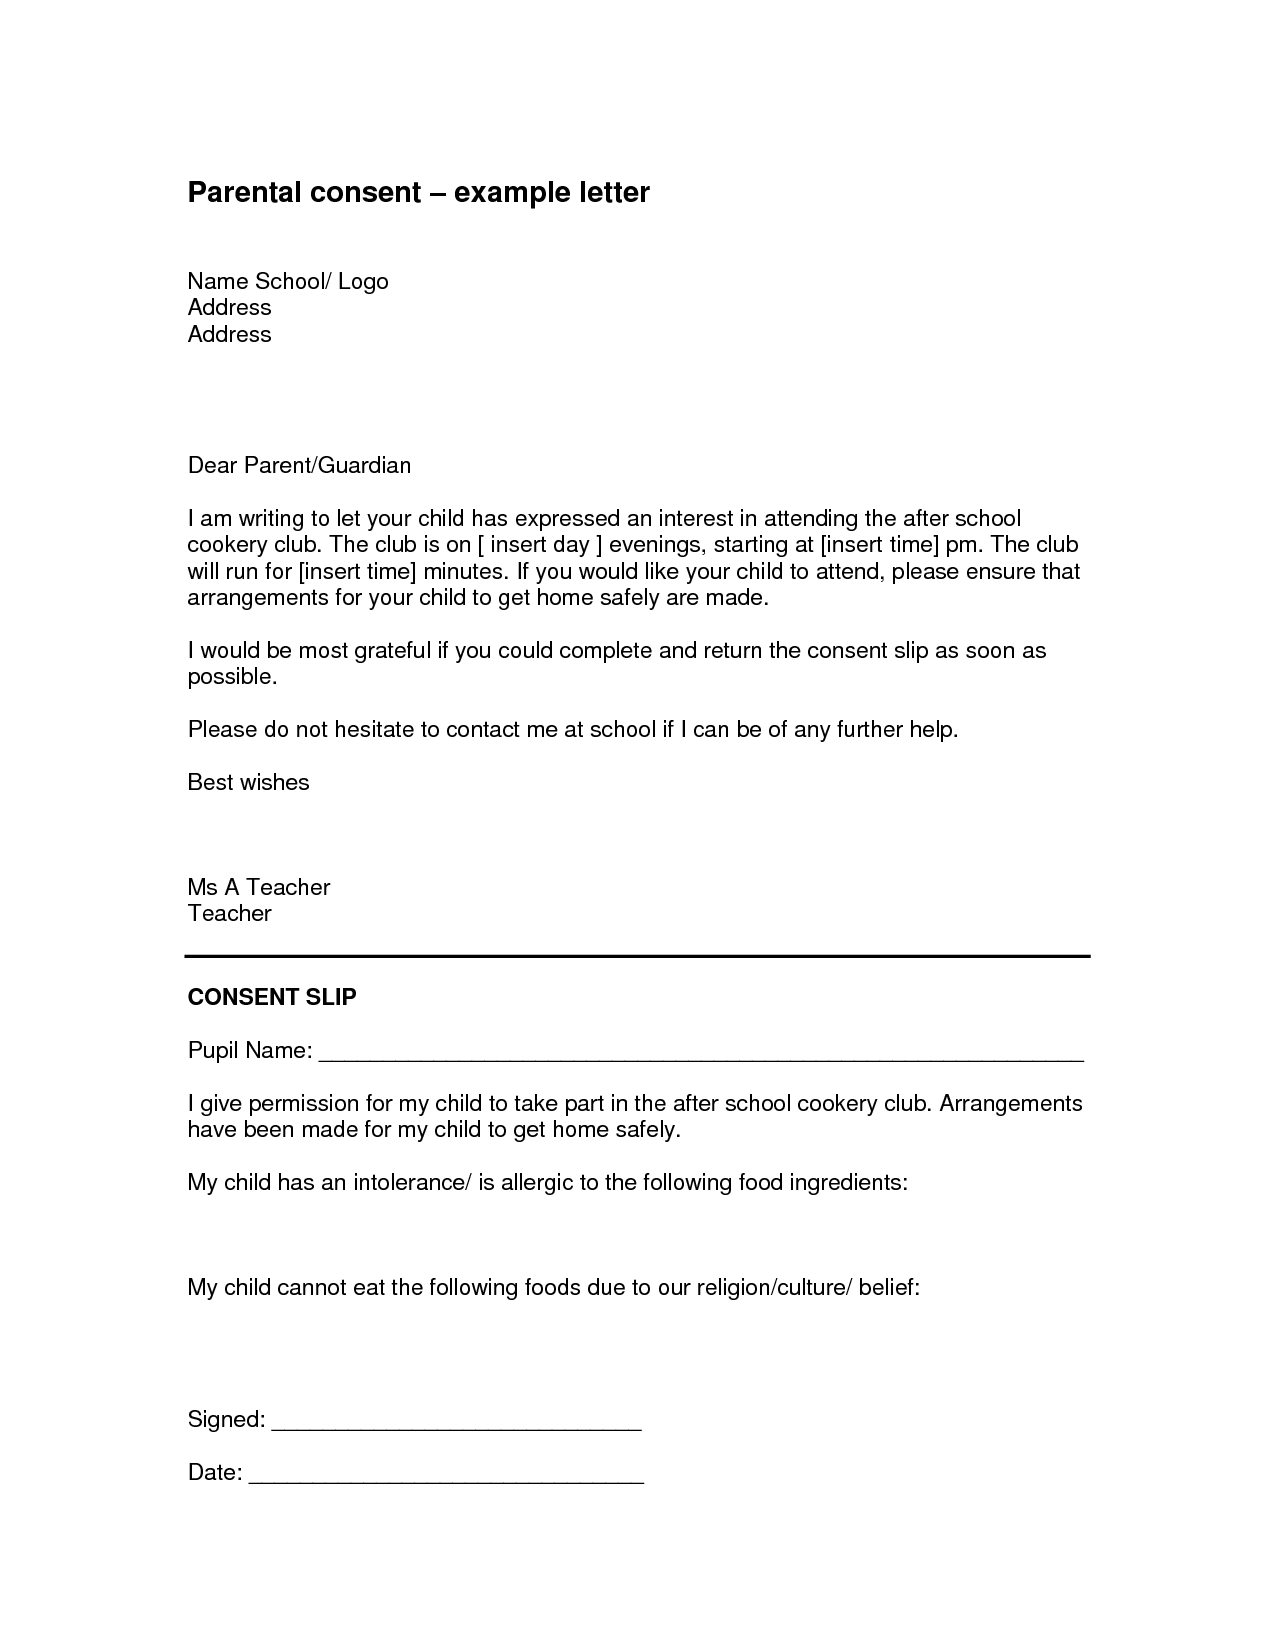 parent permission letter template Collection-Parental Authorization Letter For example children travelling alone with groups or with only one custodial parent should travel with a consent letter 1-l